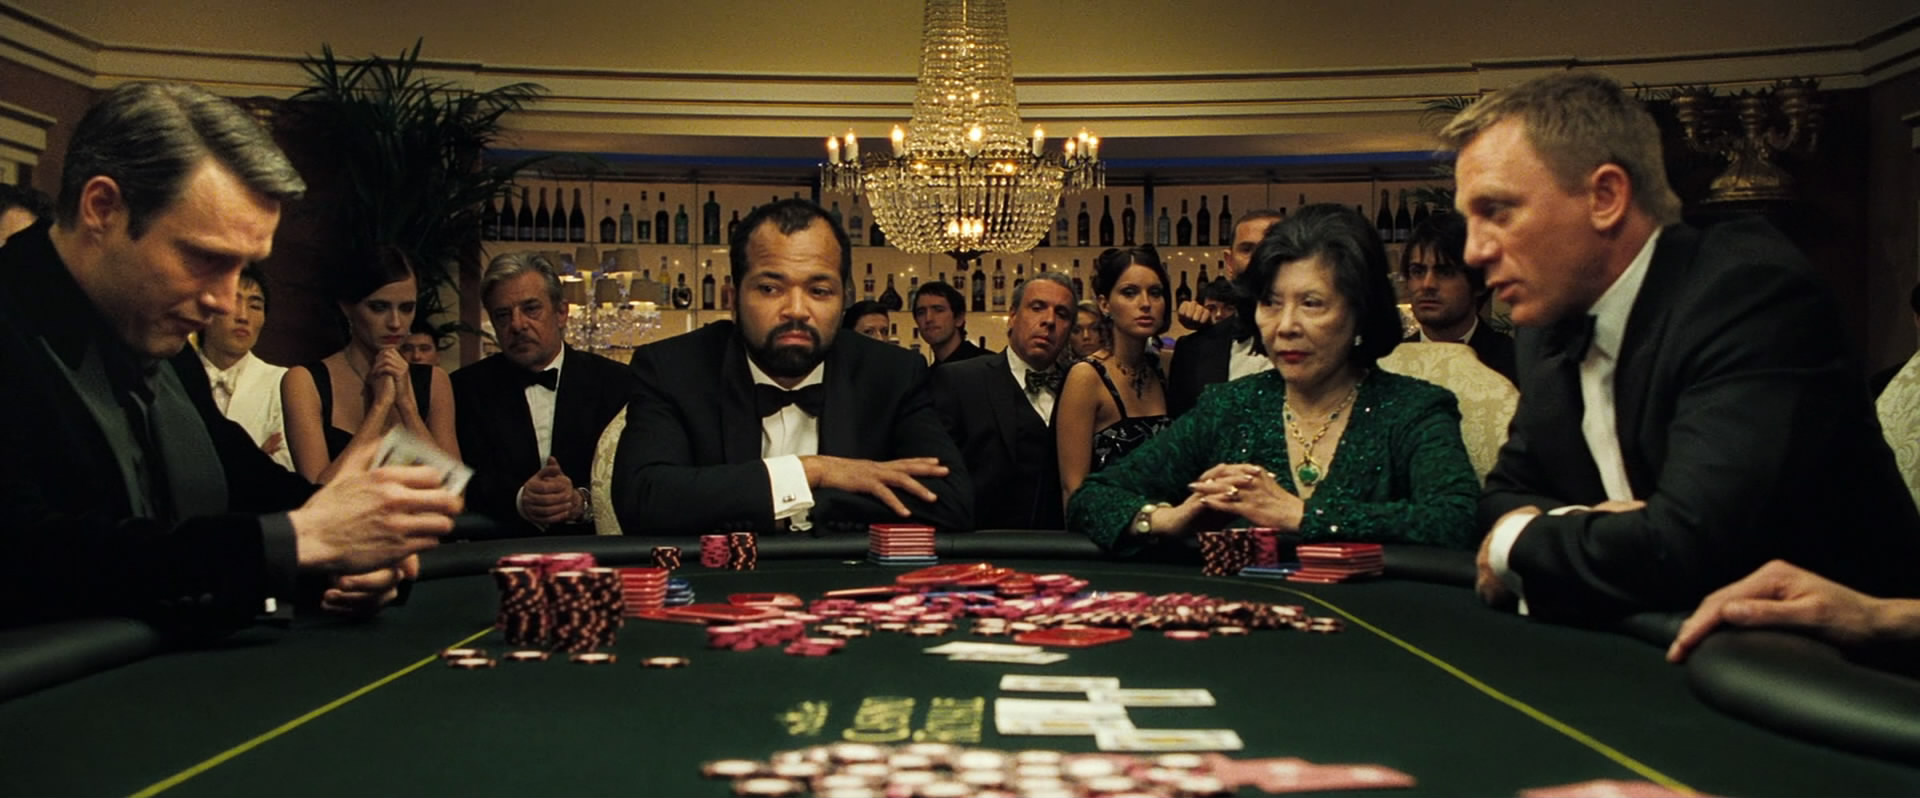 Casino Royale Movie - 2006